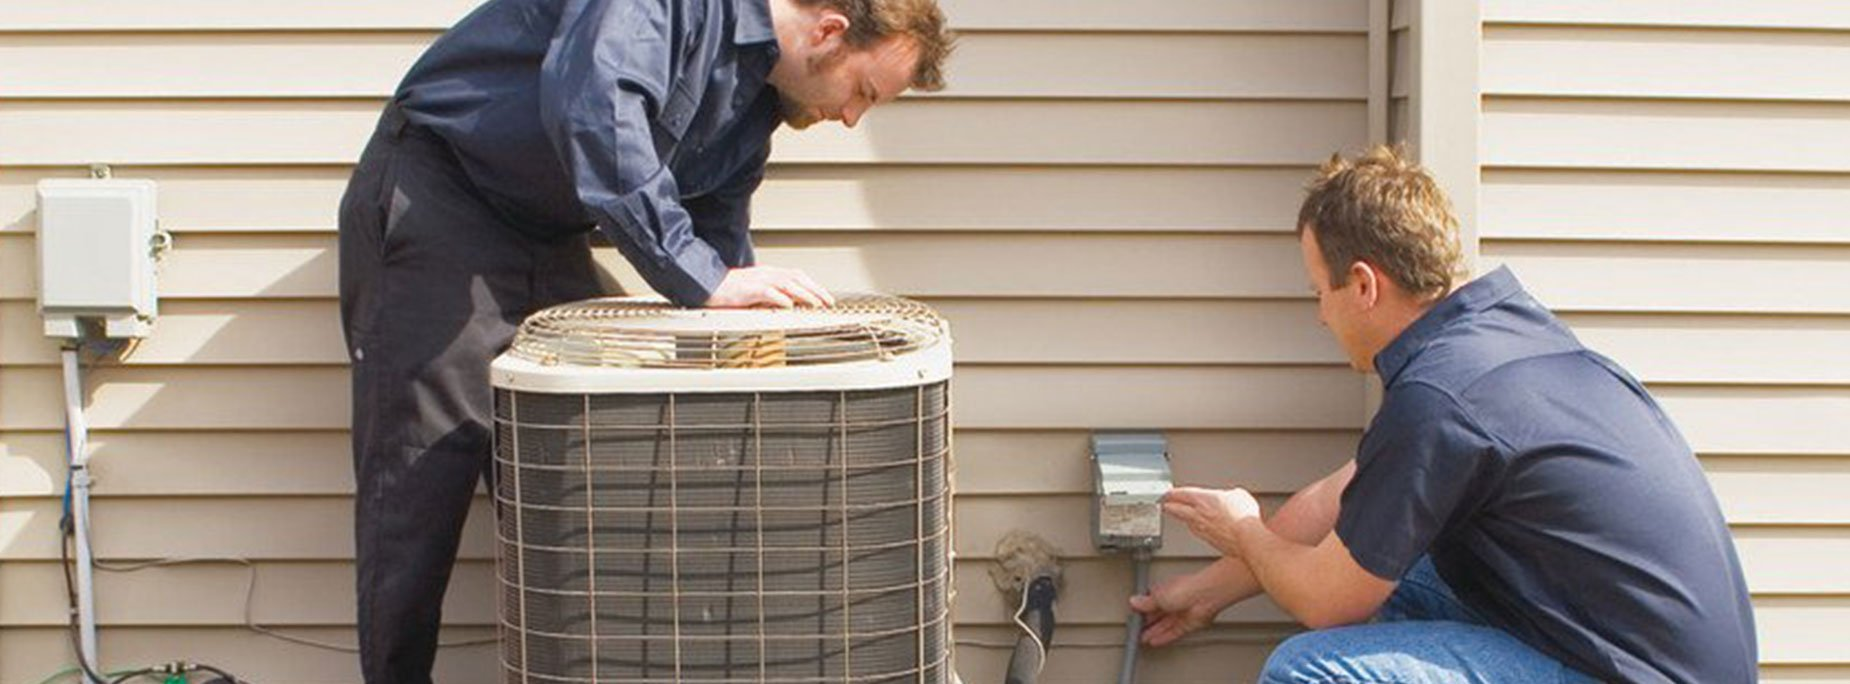 Two Guys repairing Air conditioner units